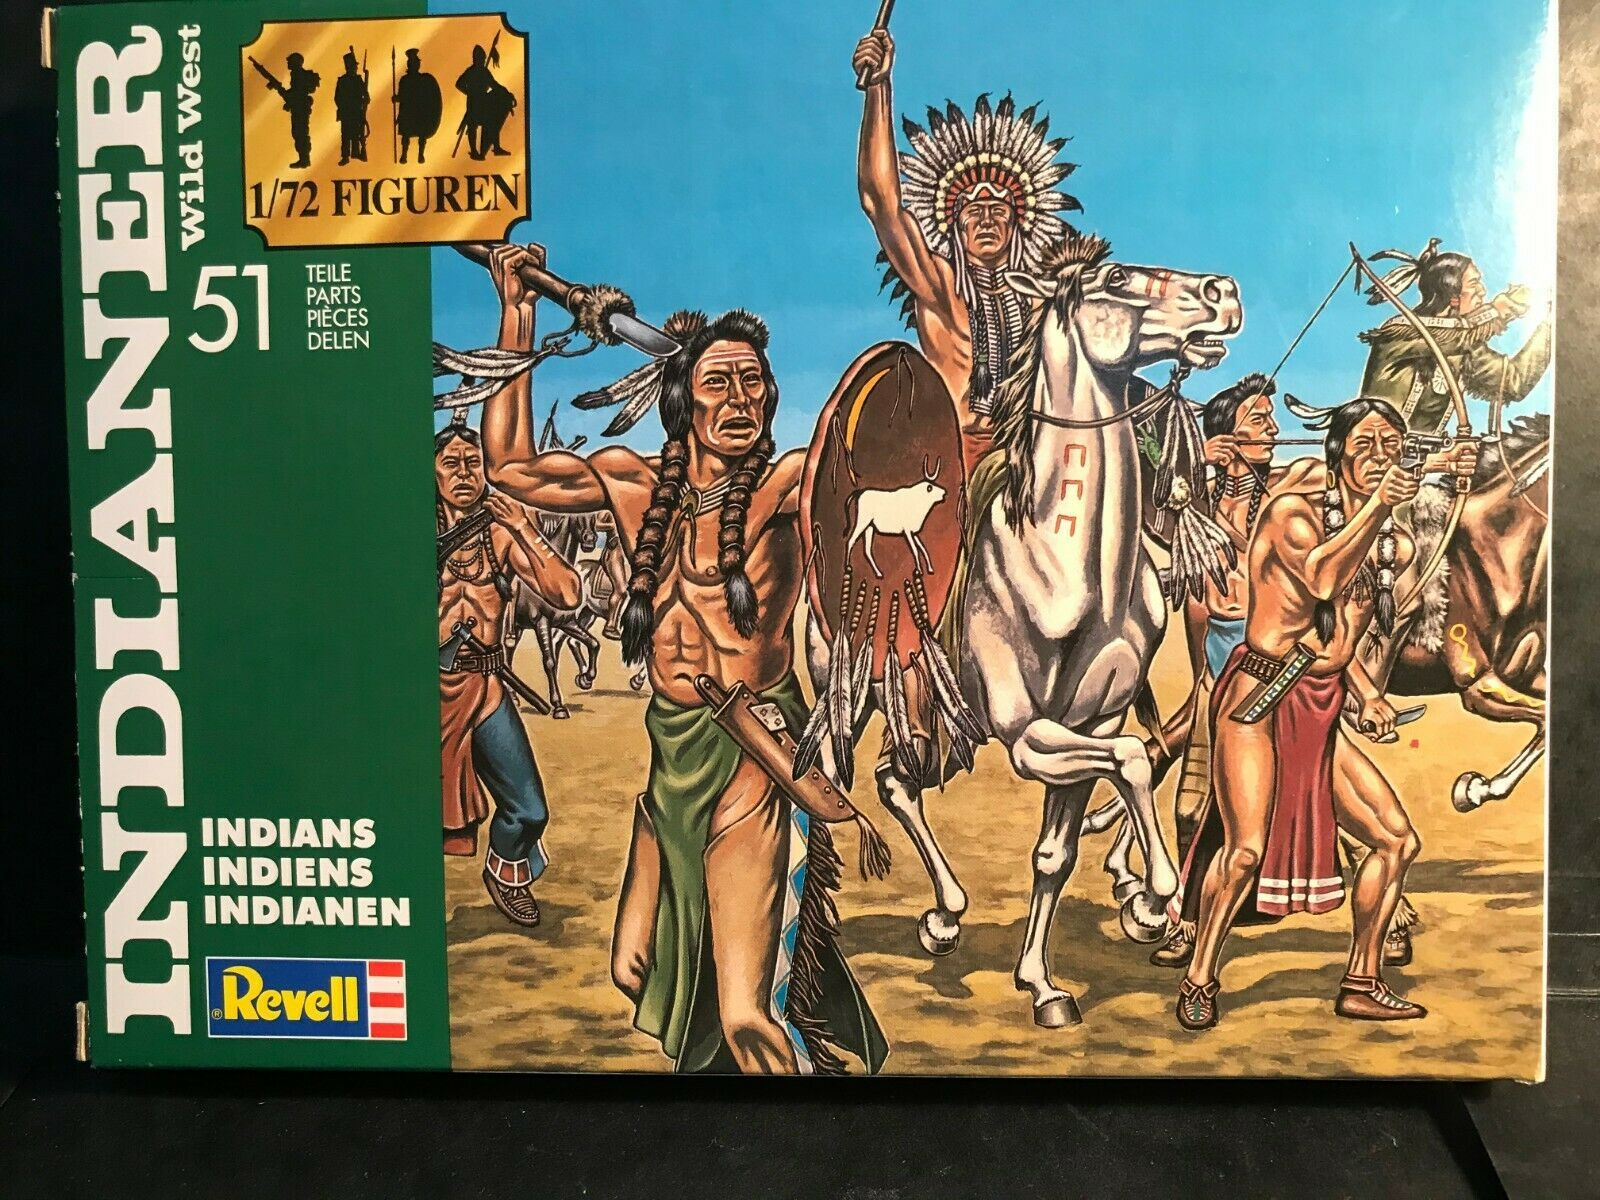 REVELL 1/72 WILD WEST  PLASTIC  INDIANS & COWBOYS 2554 & 2555 GERMANY 1990 !  - $27.00